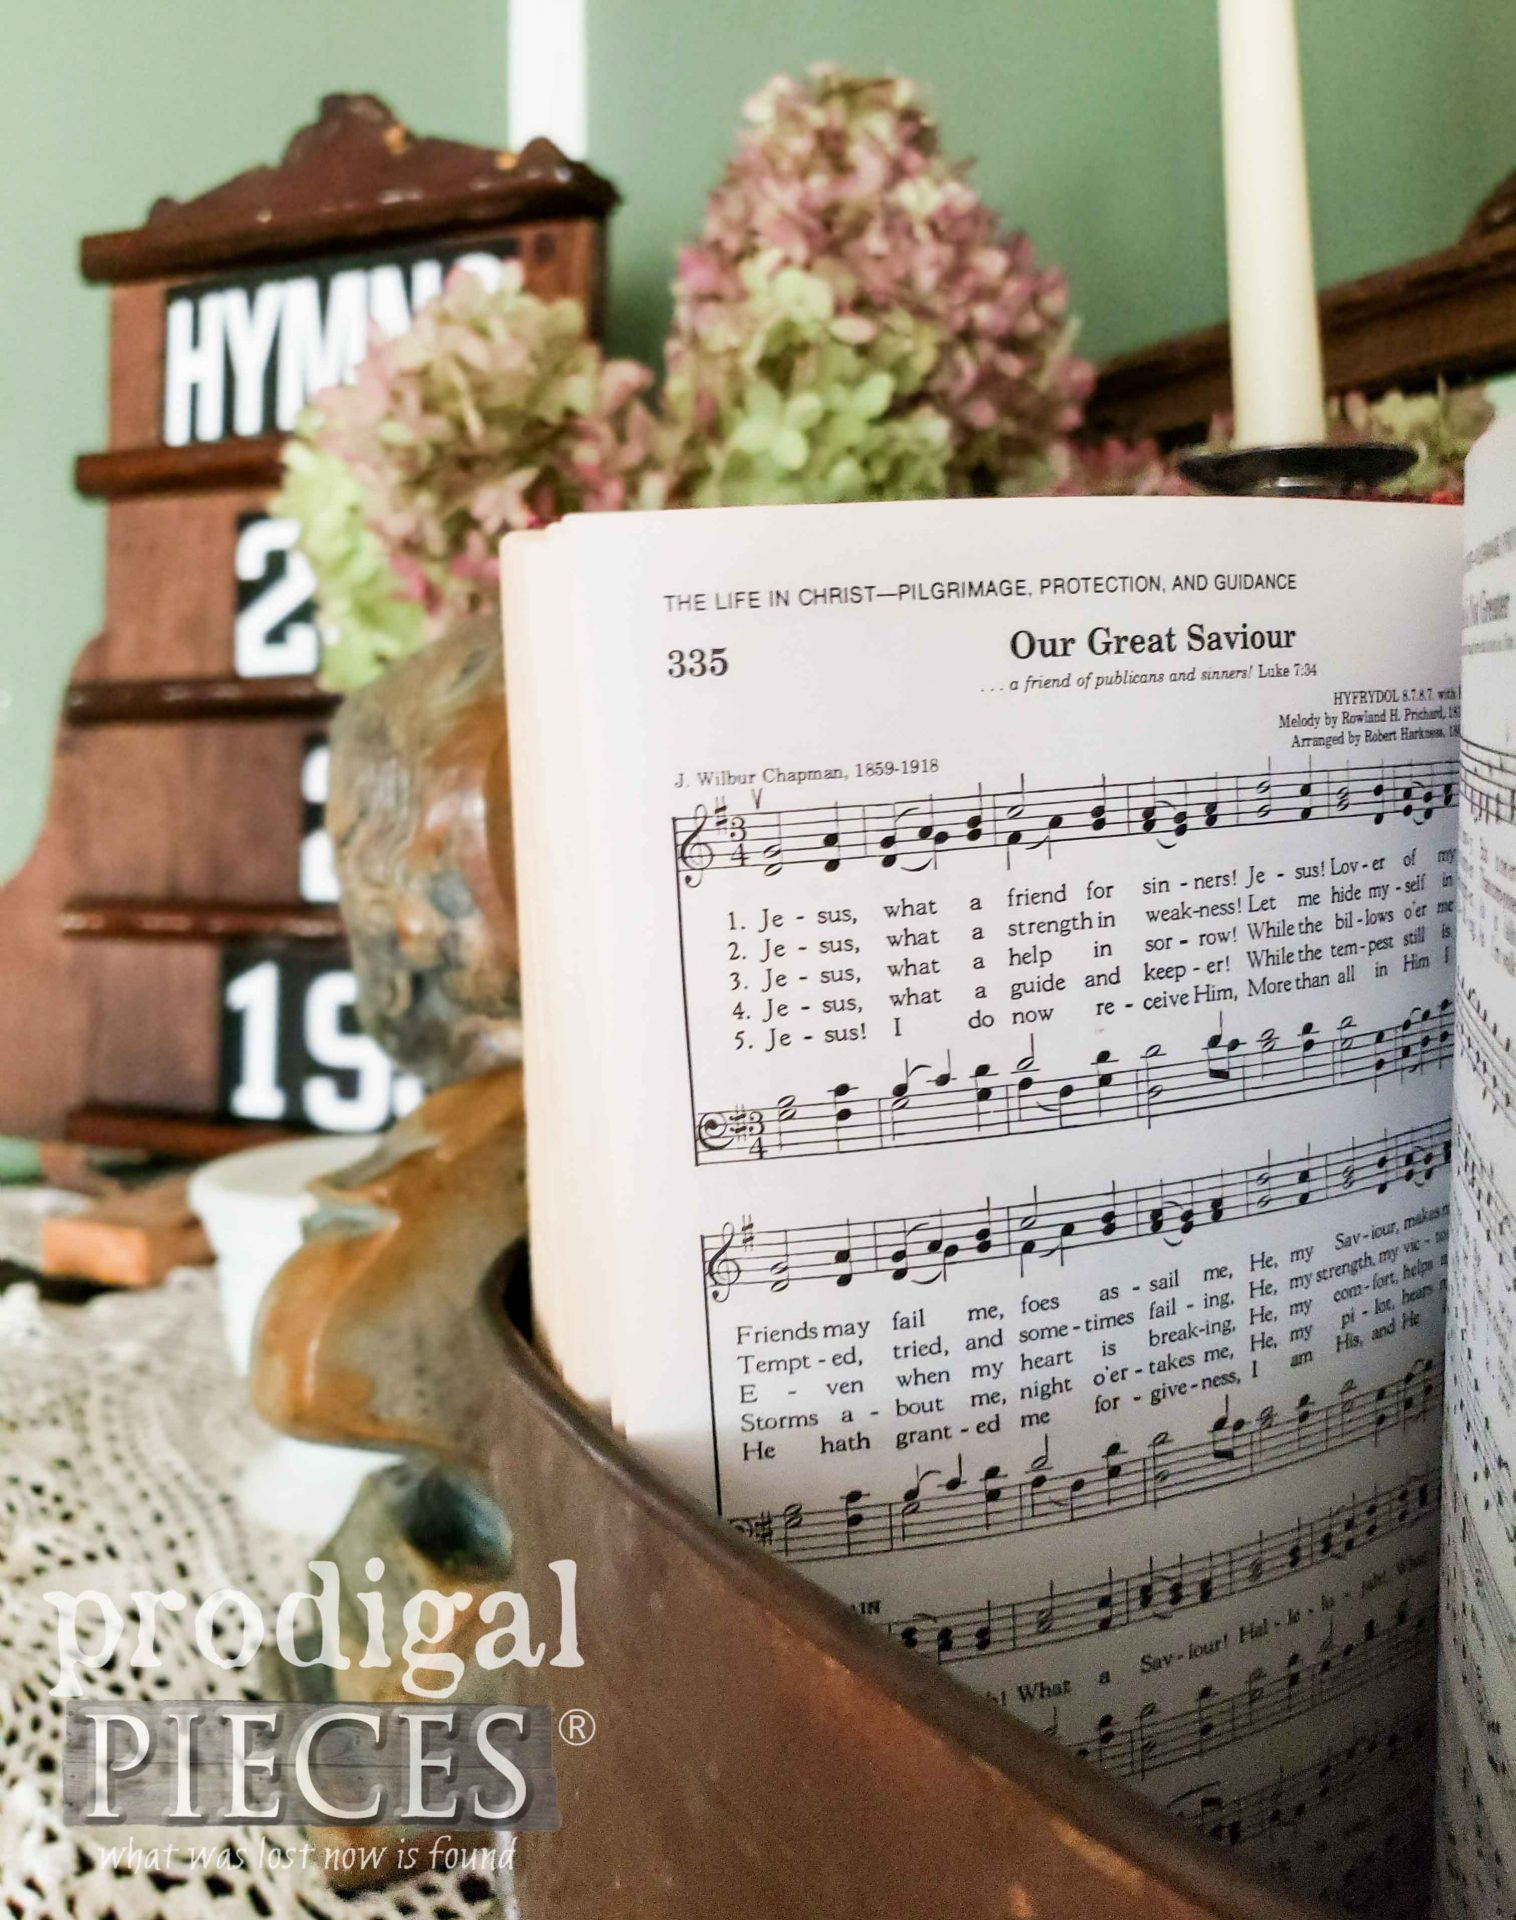 Old Hymnal and Upcycled Hymnal Board in Home of Larissa of Prodigal Pieces | prodigalpieces.com #prodigalpieces #diy #home #homedecor #farmhouse